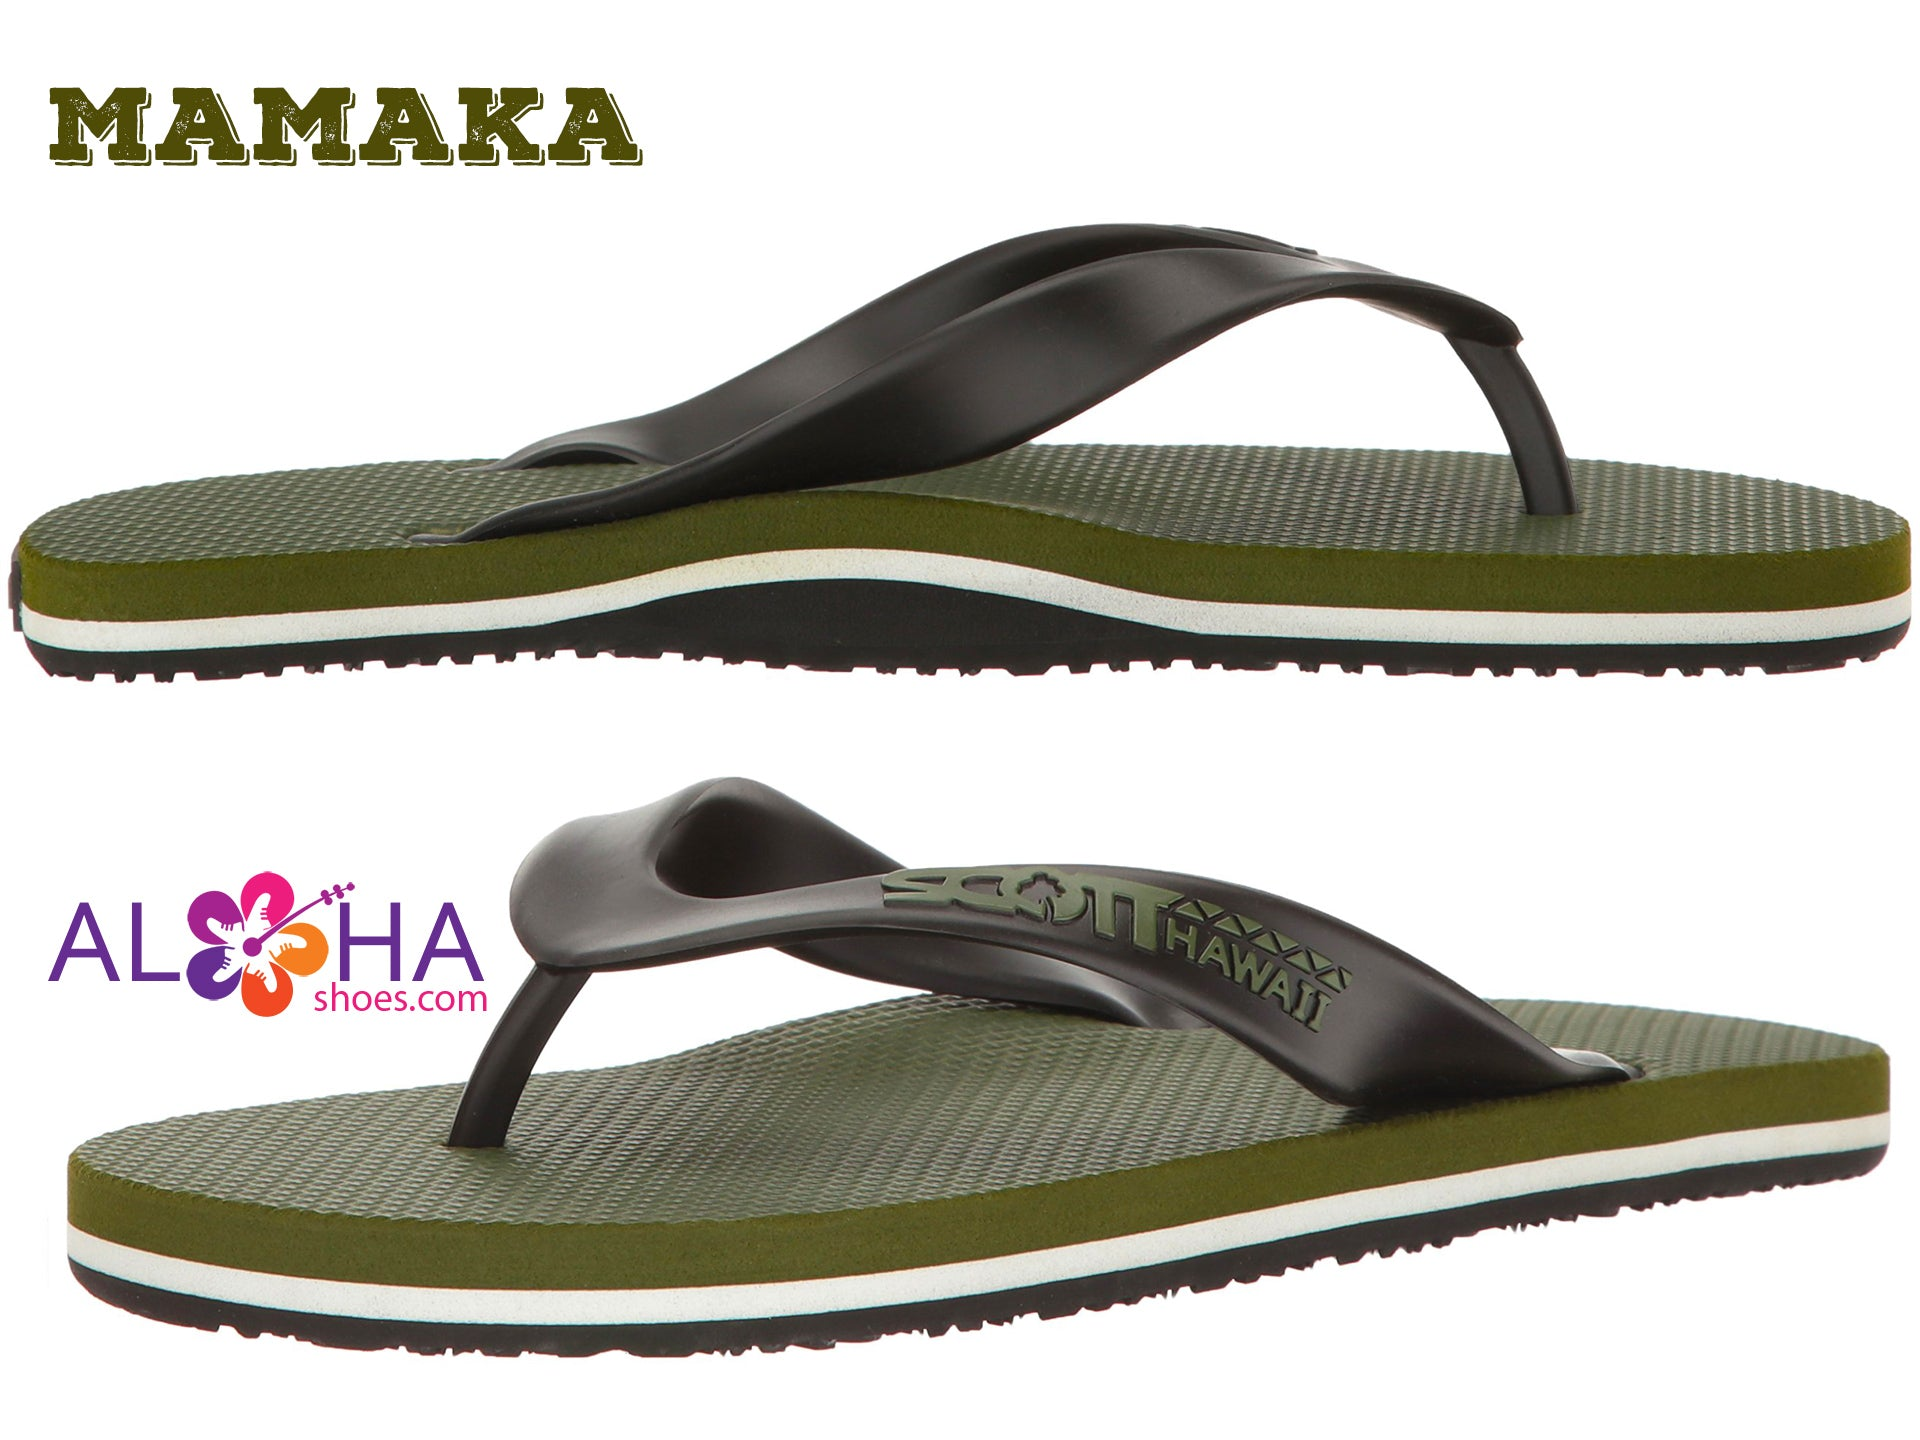 Scott Rubber Slippers Mamaka | Size 10 Green Flip-Flops - AlohaShoes.com